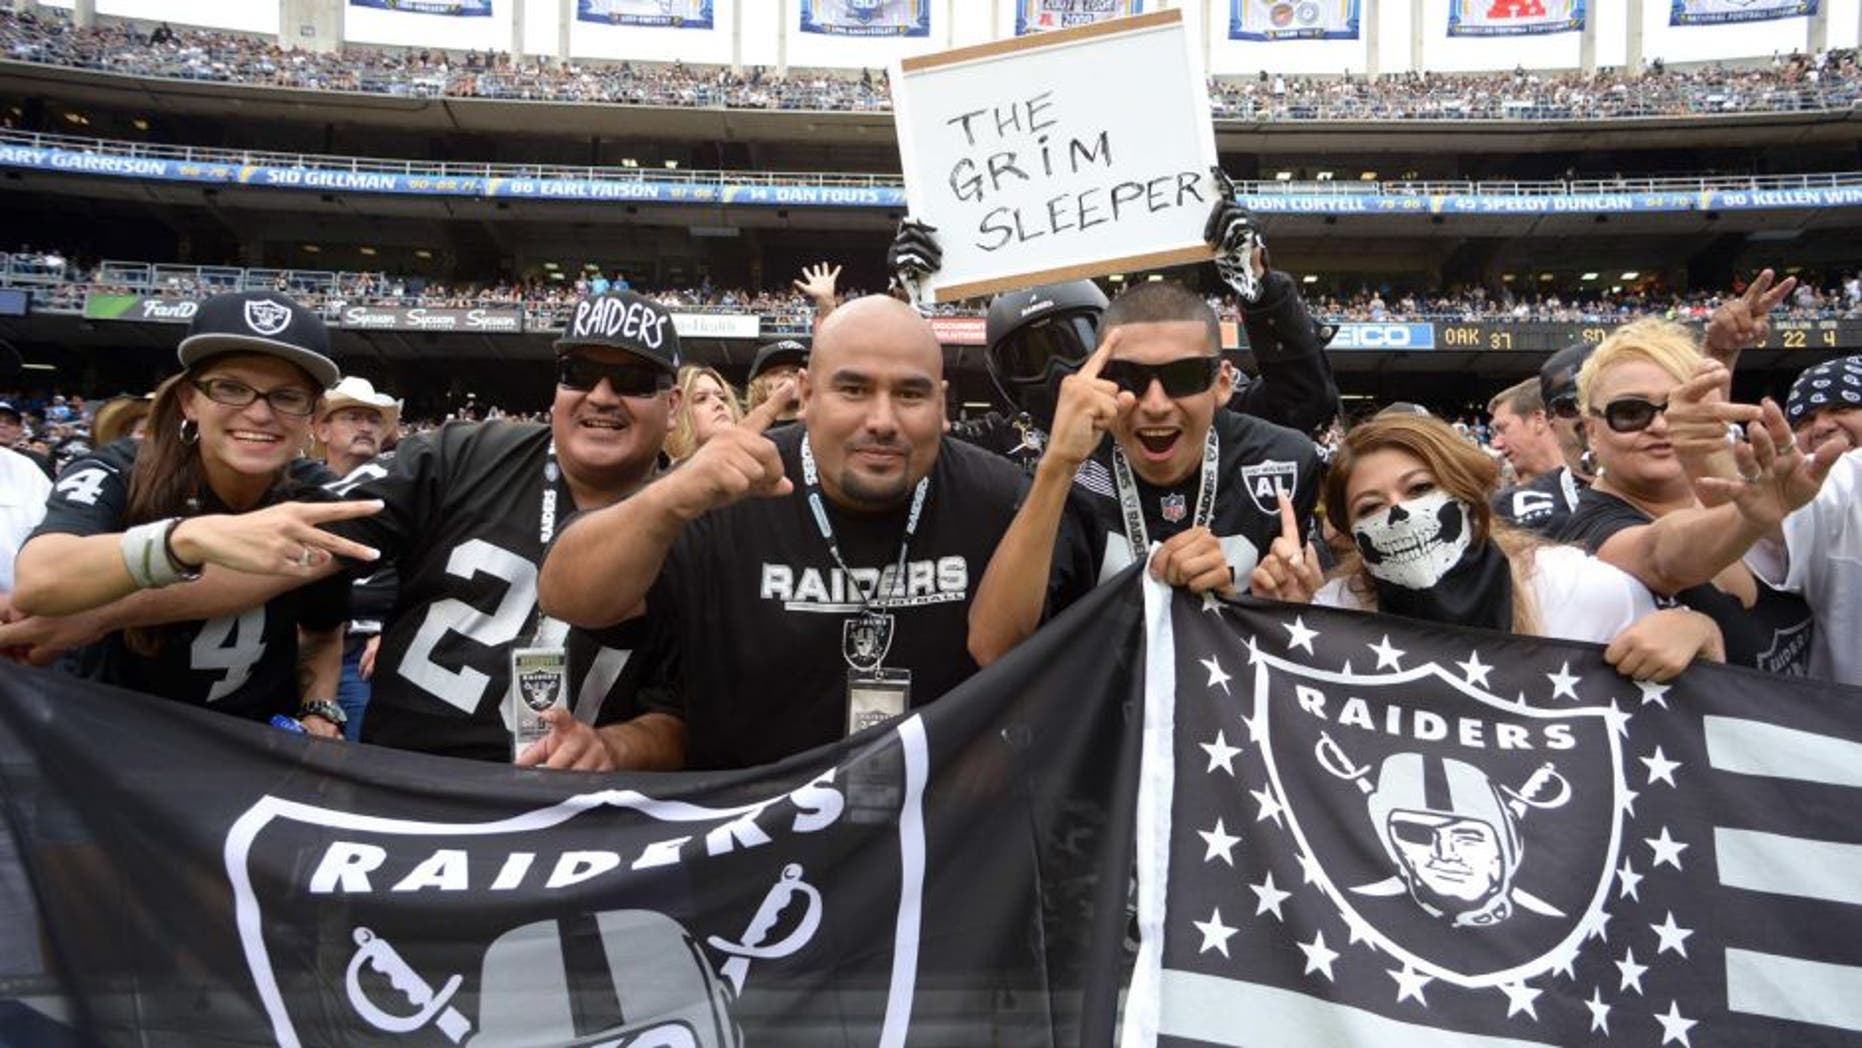 Oct 25, 2015; San Diego, CA, USA; Oakland Raiders fans cheer during the fourth quarter against the San Diego Chargers at Qualcomm Stadium. Mandatory Credit: Jake Roth-USA TODAY Sports